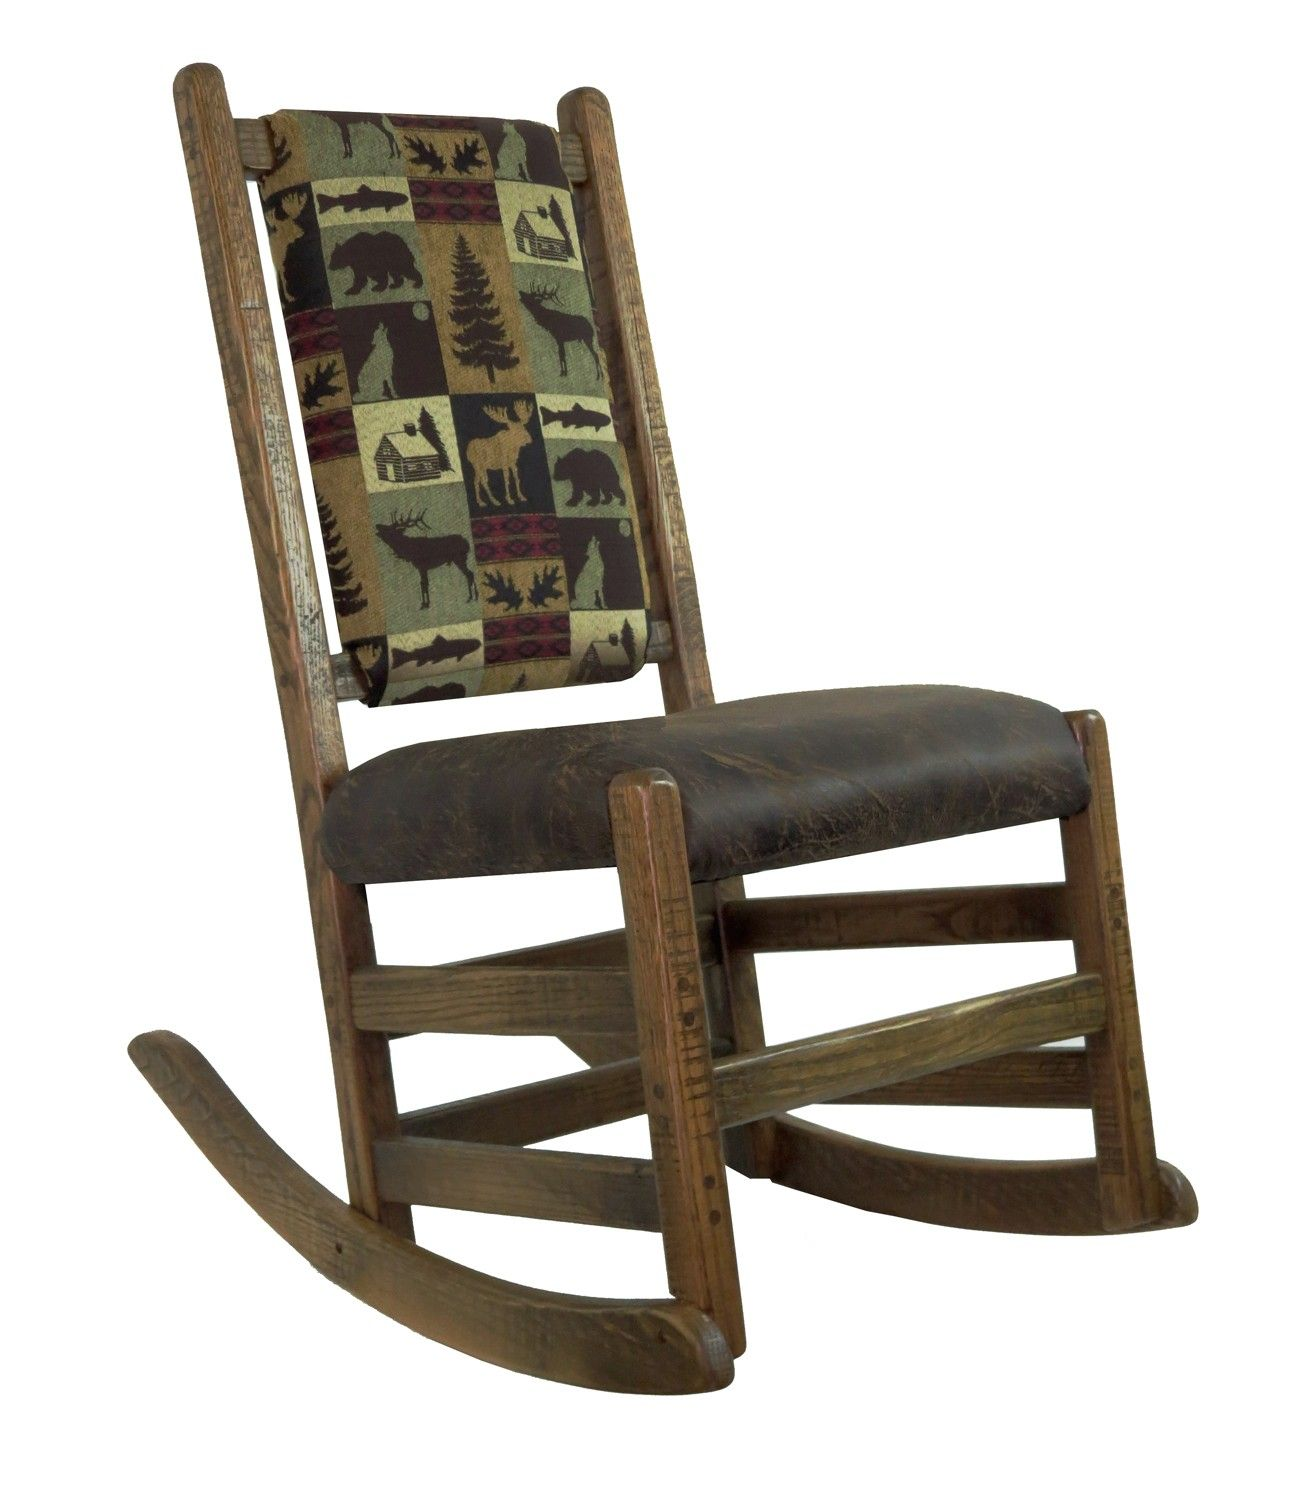 Perfect Rustic Rocker for the cabin! Barn wood, Rocking